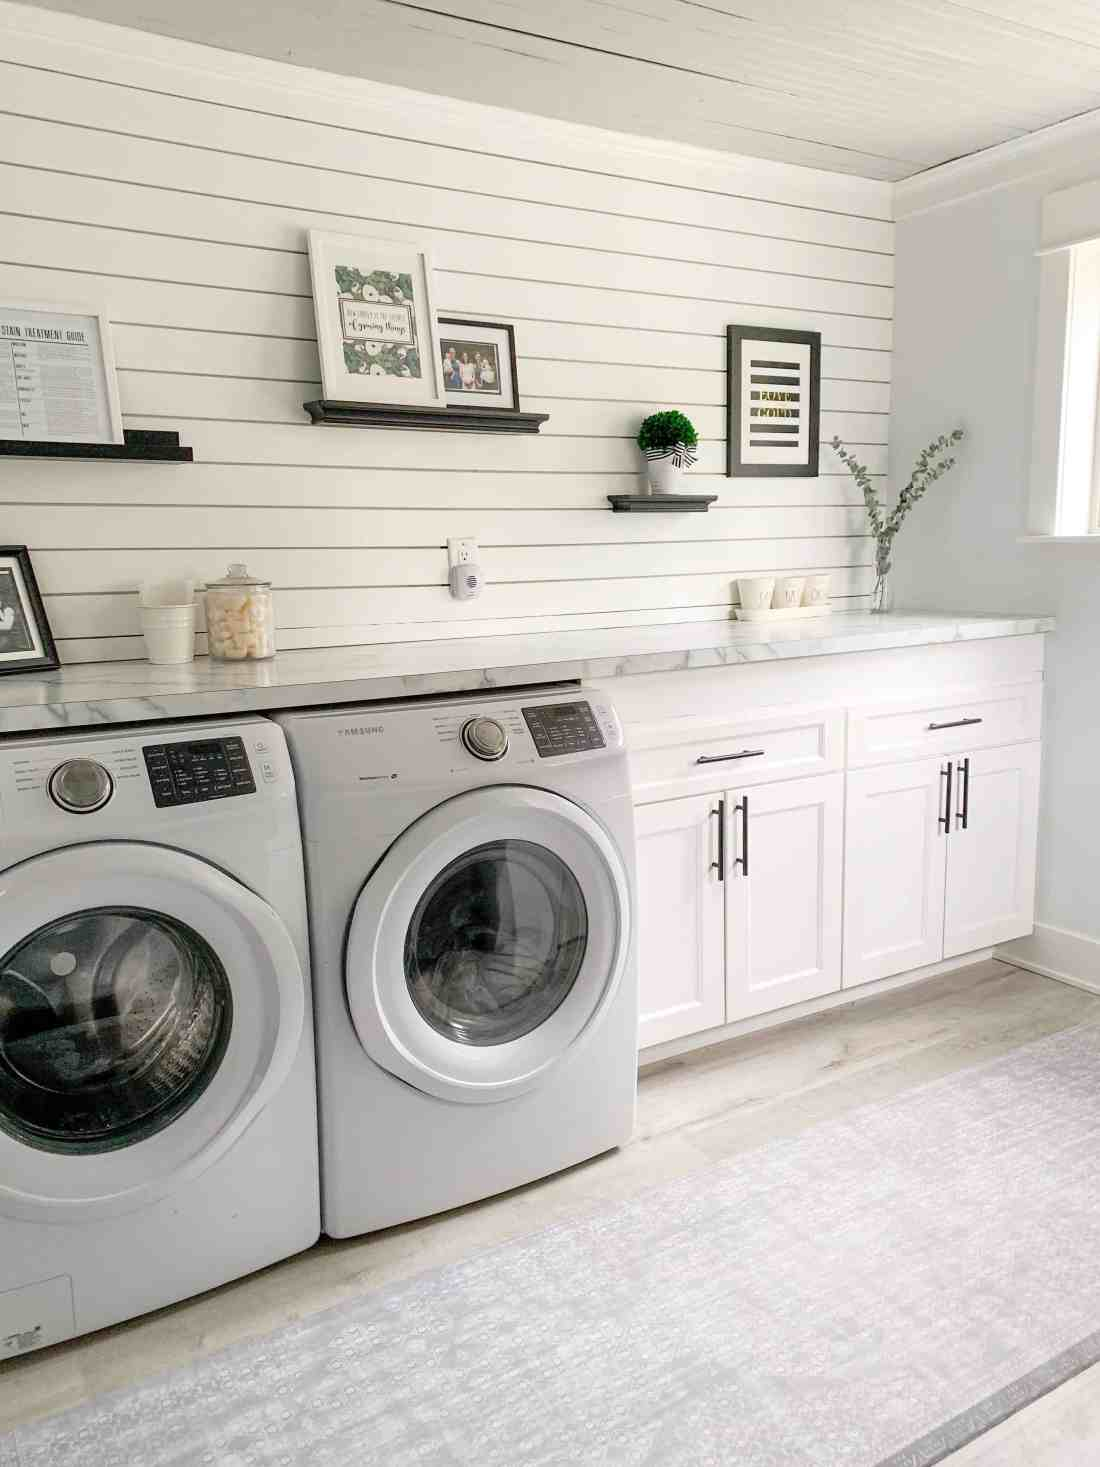 Namamat review: namamat rug in laundry room featured by top Michigan lifestyle blog, House of Navy.